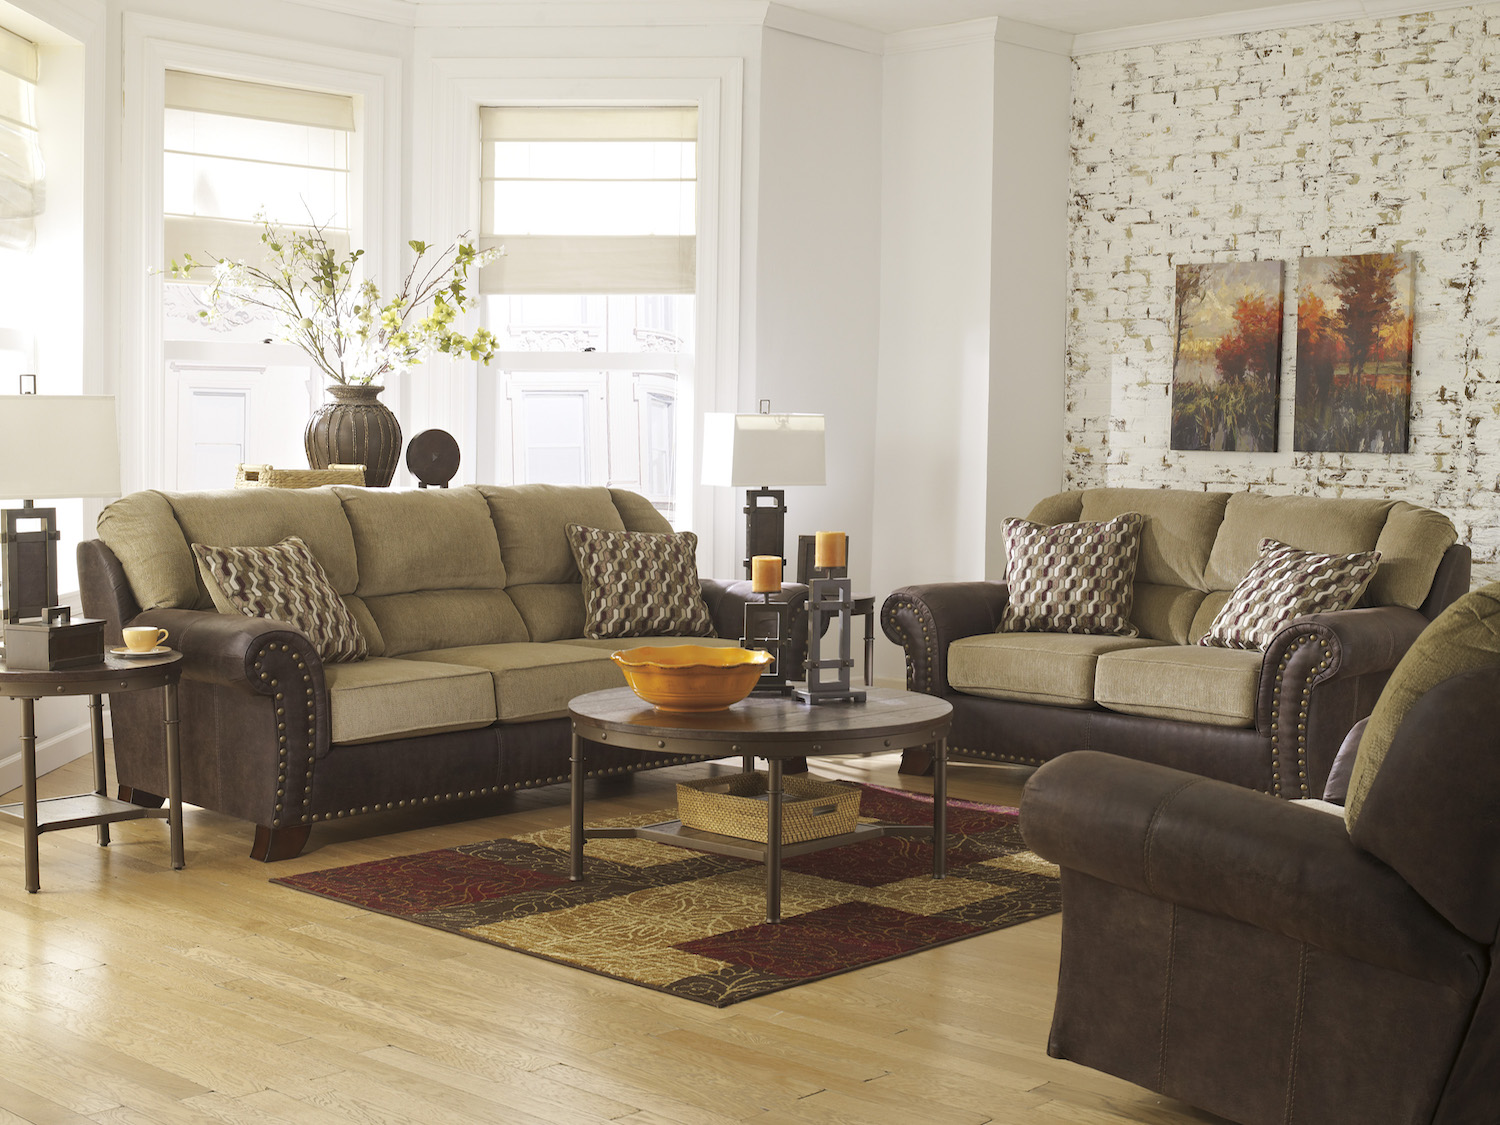 Vandive sofa set, 443, Sofa Sets by Midha Furniture to Brampton, Mississauga, Etobicoke, Toronto, Scraborough, Caledon, Oakville, Markham, Ajax, Pickering, Oshawa, Richmondhill, Kitchener, Hamilton and GTA area